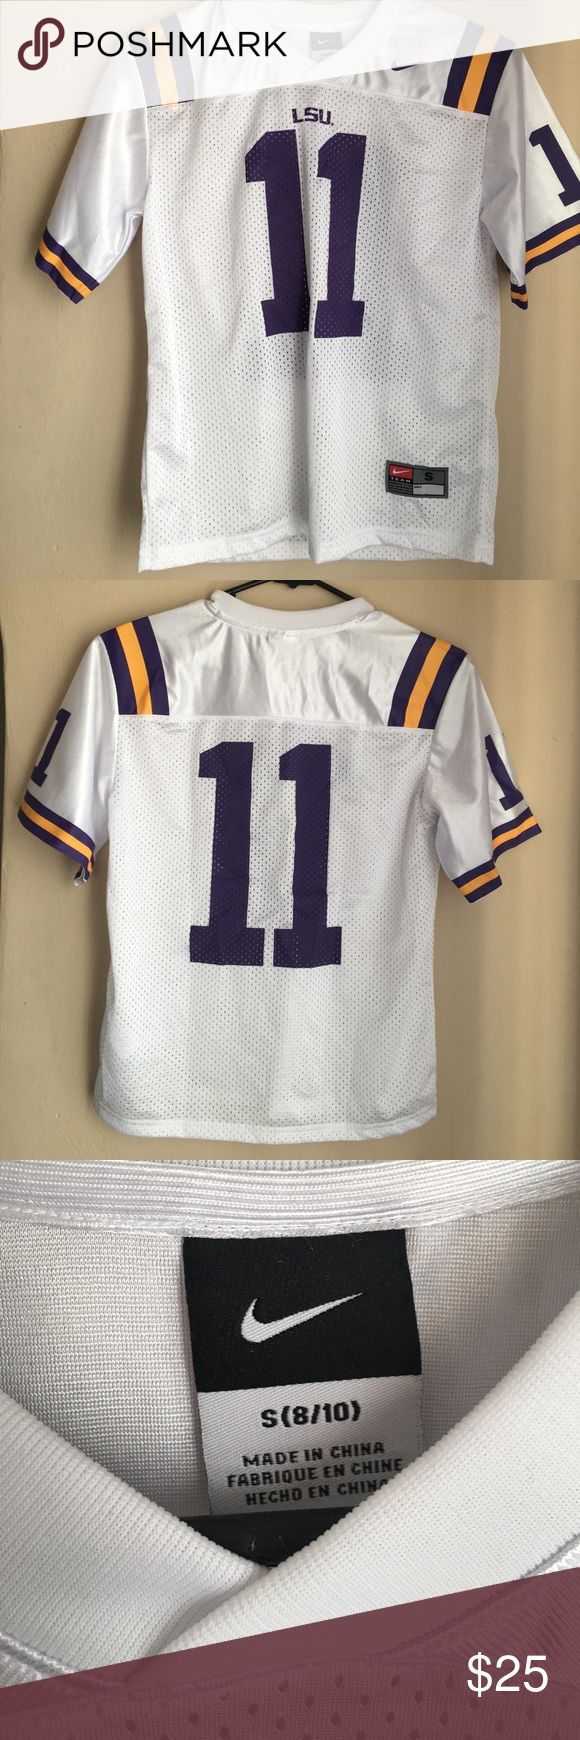 cheap nfl t-shirts china game worn college football jerseys for sale